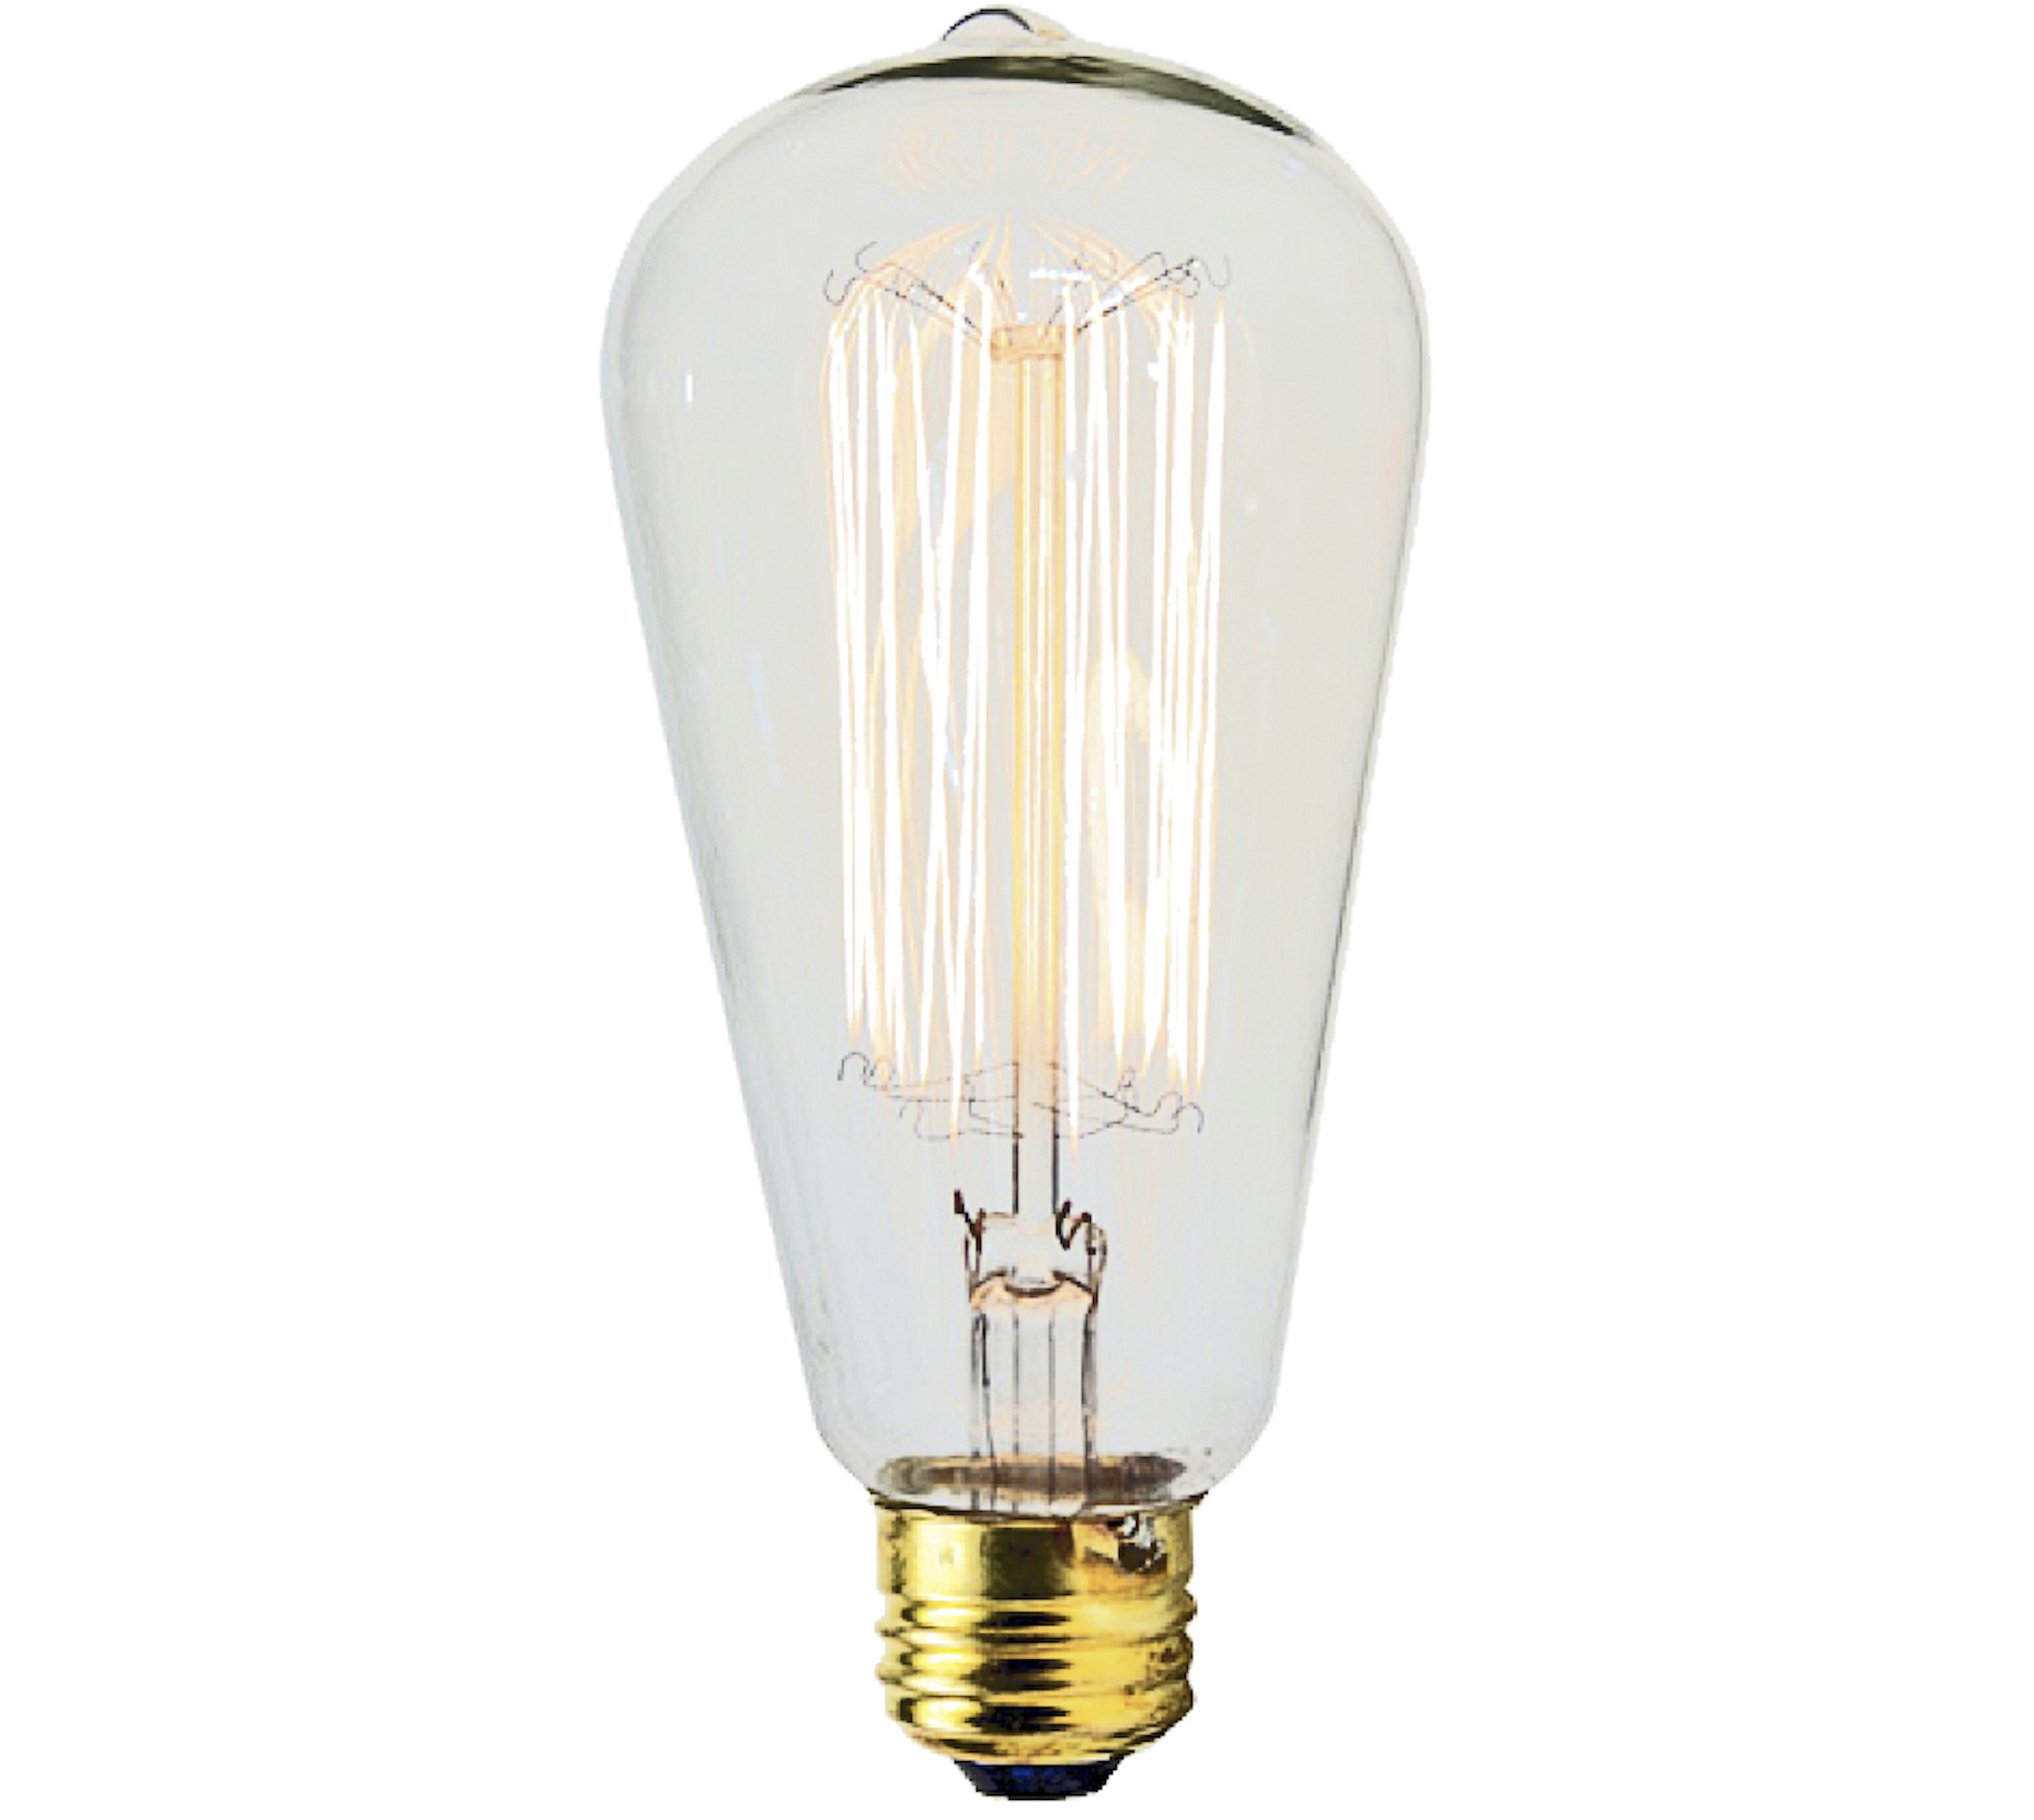 60w light bulb on storenvy A light bulb